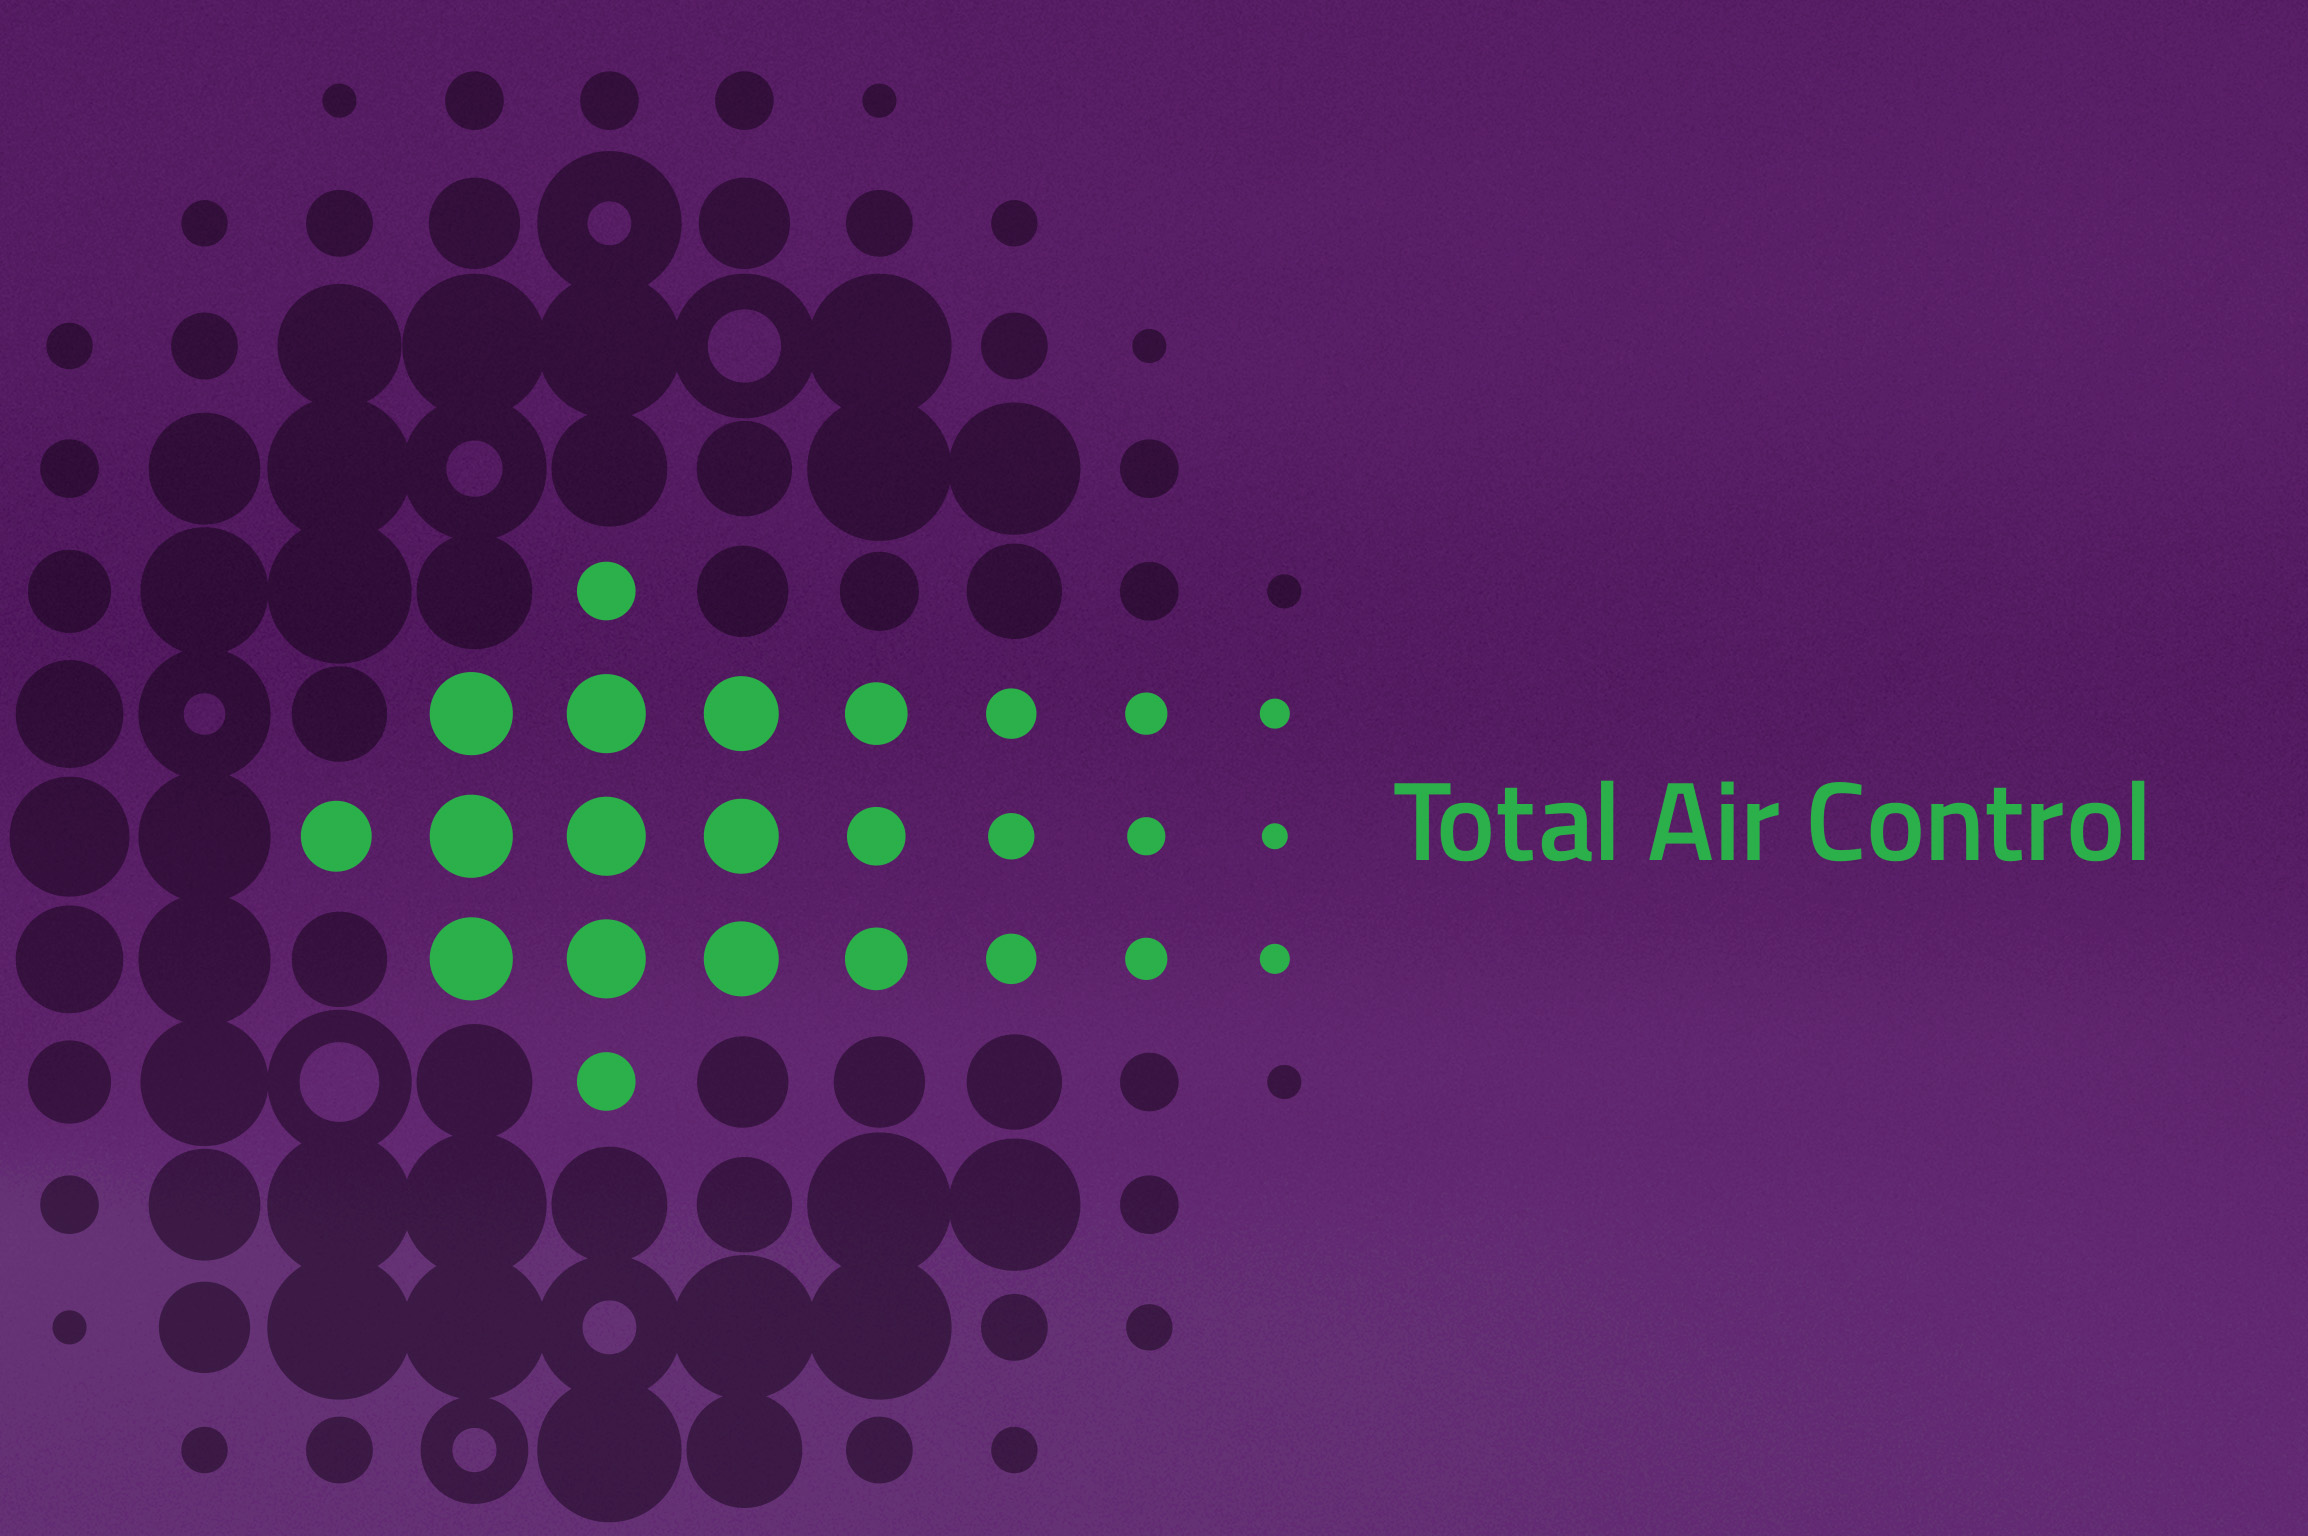 Cover image: Total Air Control